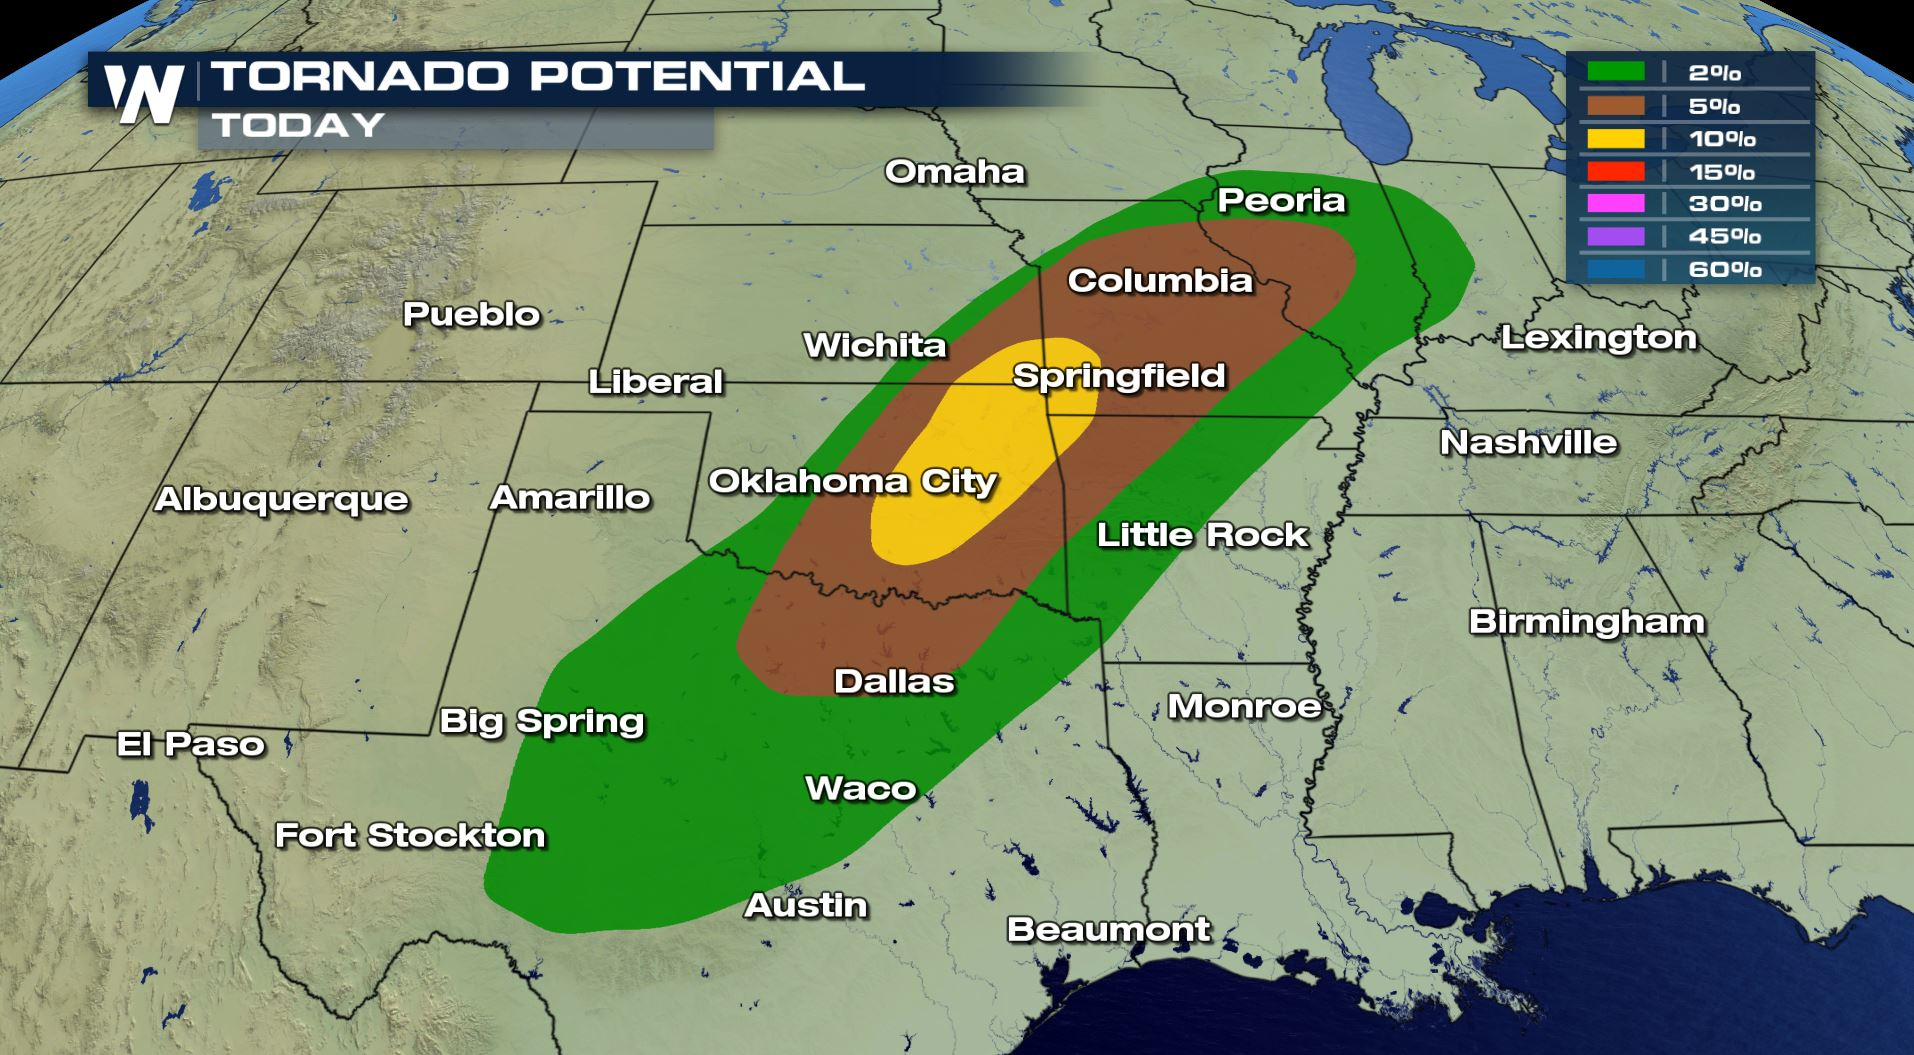 Map Of Tornadoes Today Tornado Risk Today for Oklahoma, Kansas and Missouri   WeatherNation